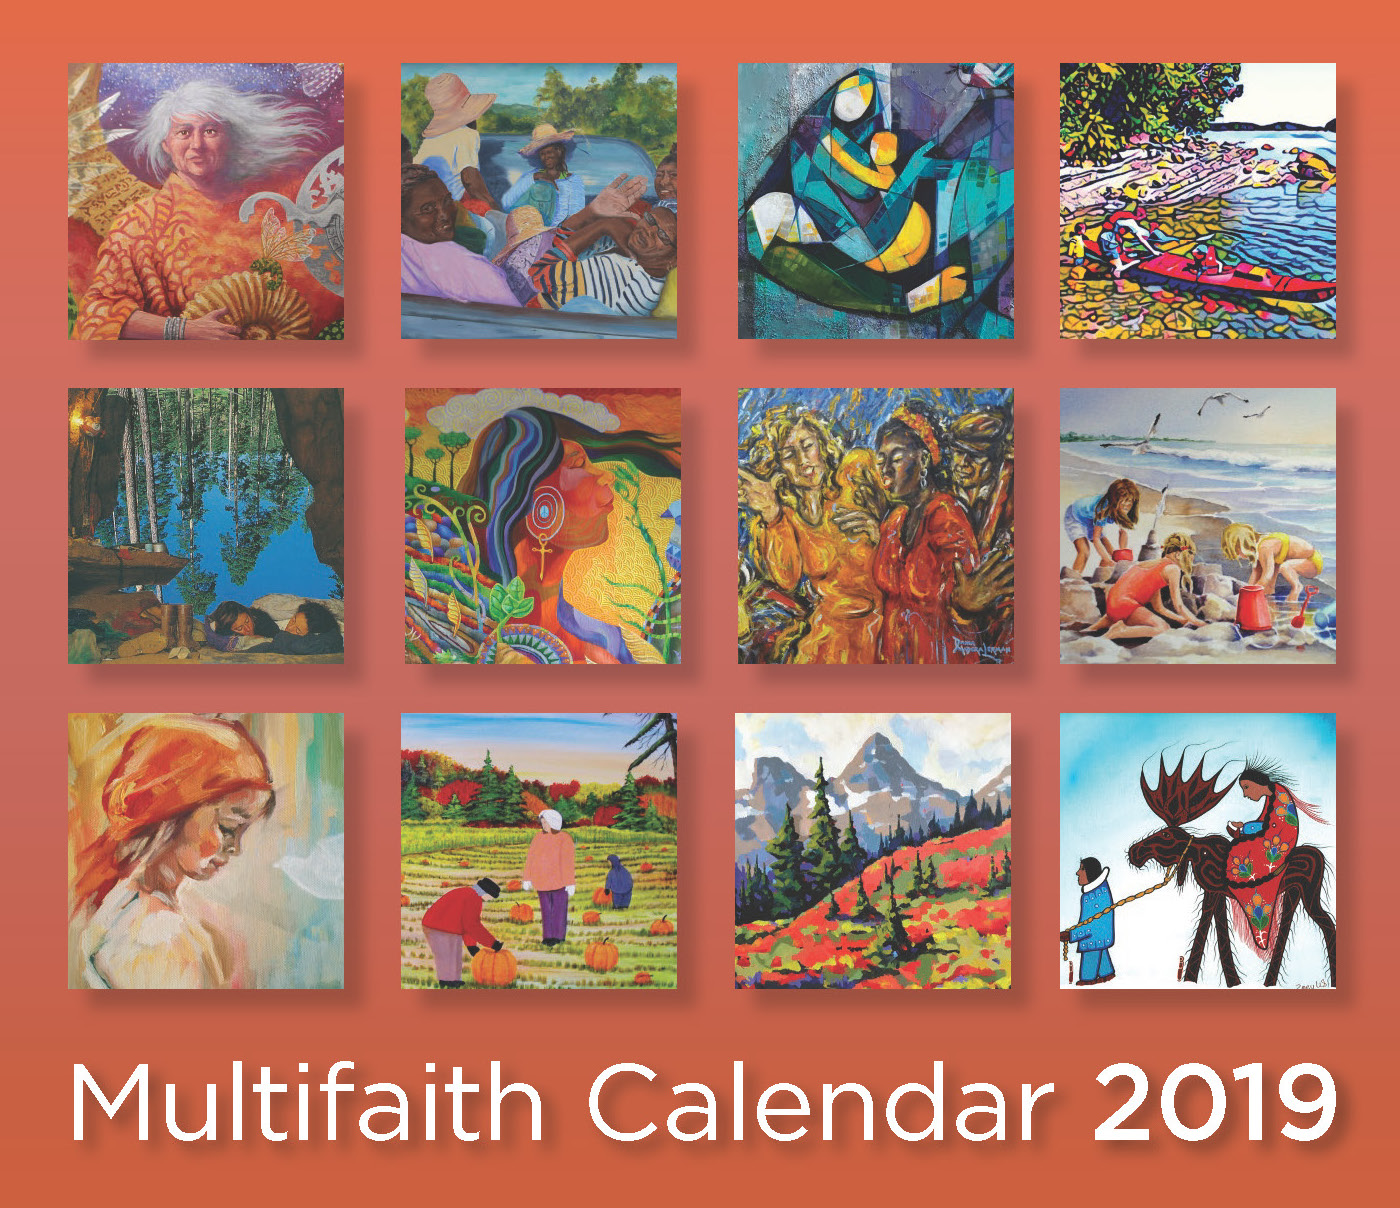 Multicultural Council of Saskatchewan, cultural diversity, intercultural, education, anti-racism, racism, multiculturalism, ethnic diversity, culture, ethnicity, awareness, acceptance, investment, multifaith, multifaith calendar, faith, religion